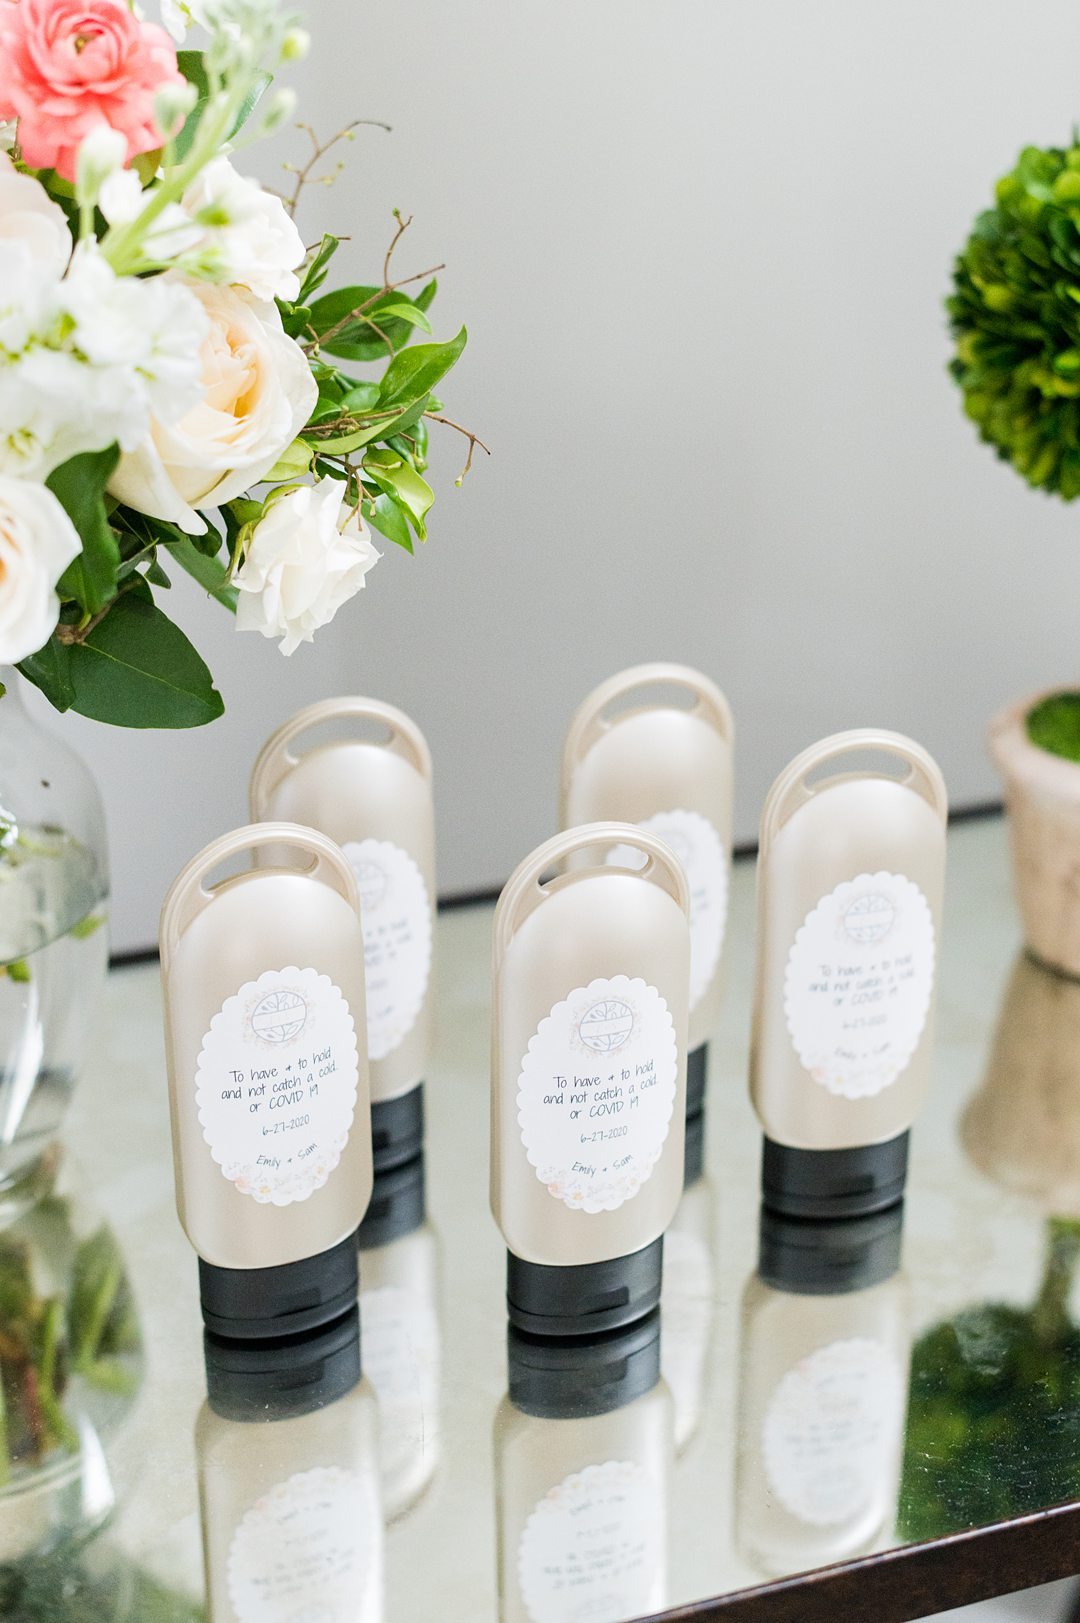 A couple pivoted during COVID-19 times for their wedding at The Lodge at Mount Ida Farm in Charlottesville, Virginia. Pictures by Mikkel Paige Photography of custom hand sanitizer favors for guests. #mikkelpaige #customhandsanitizer #weddingfavors